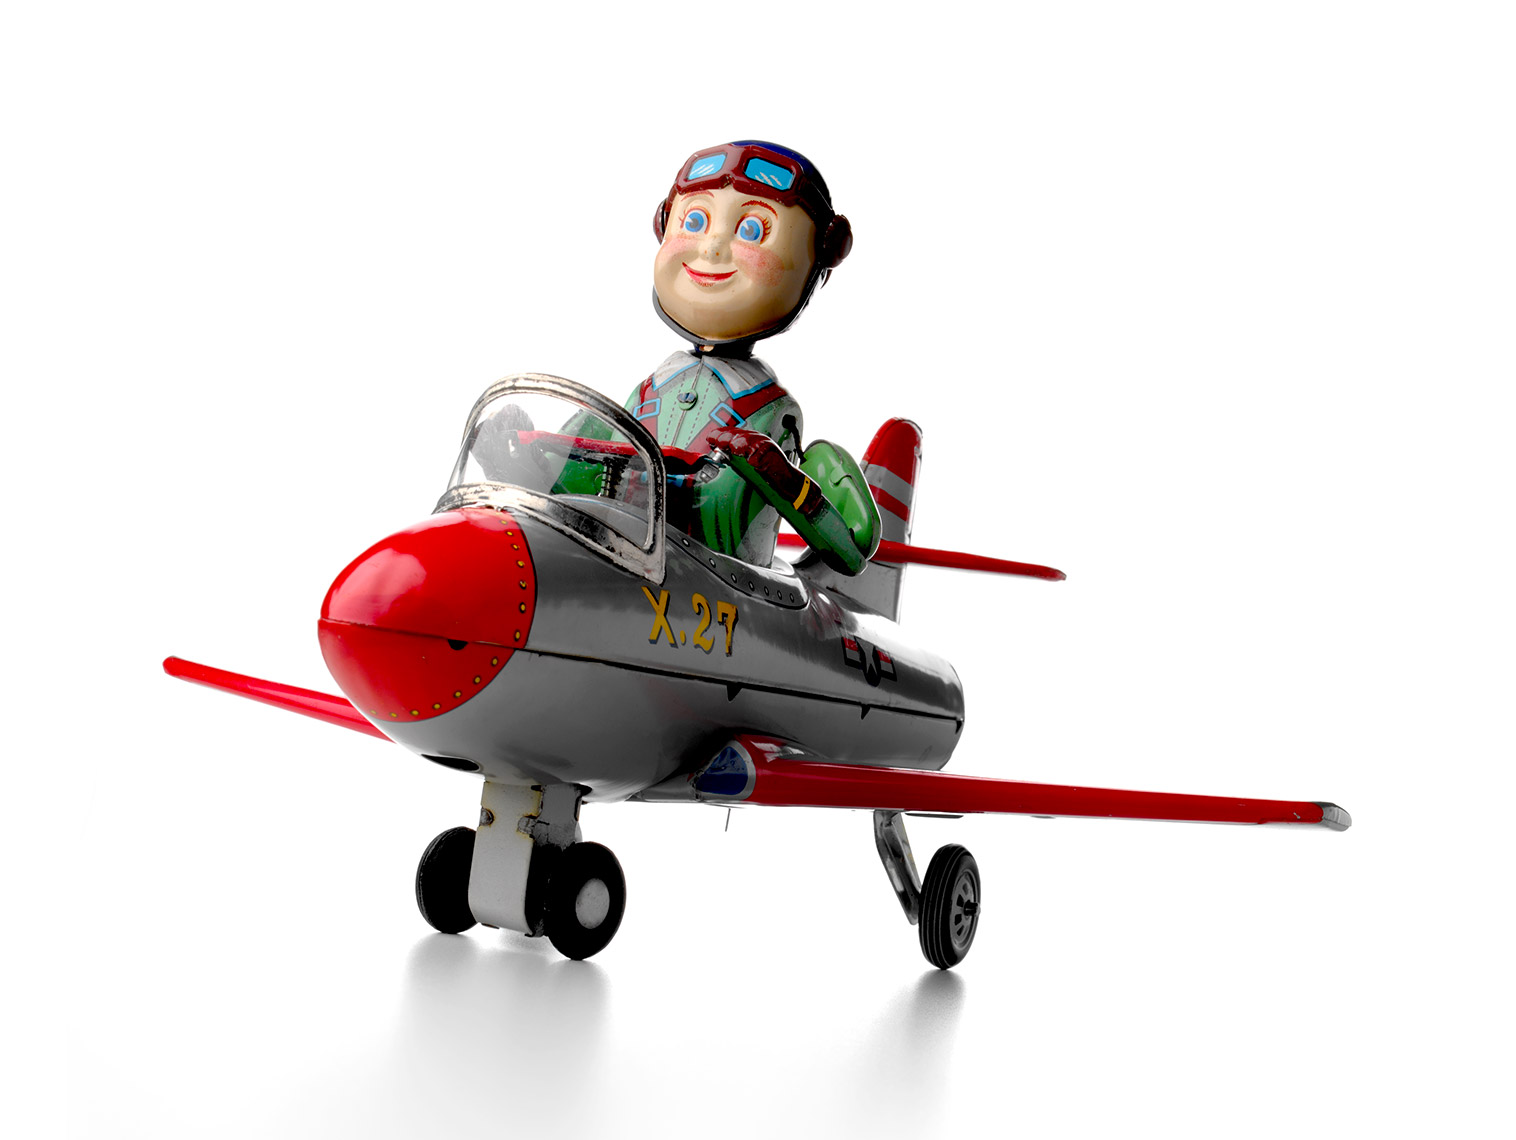 Tin_Toy_X27_Low_angle_RESIZED_FOR_WEB